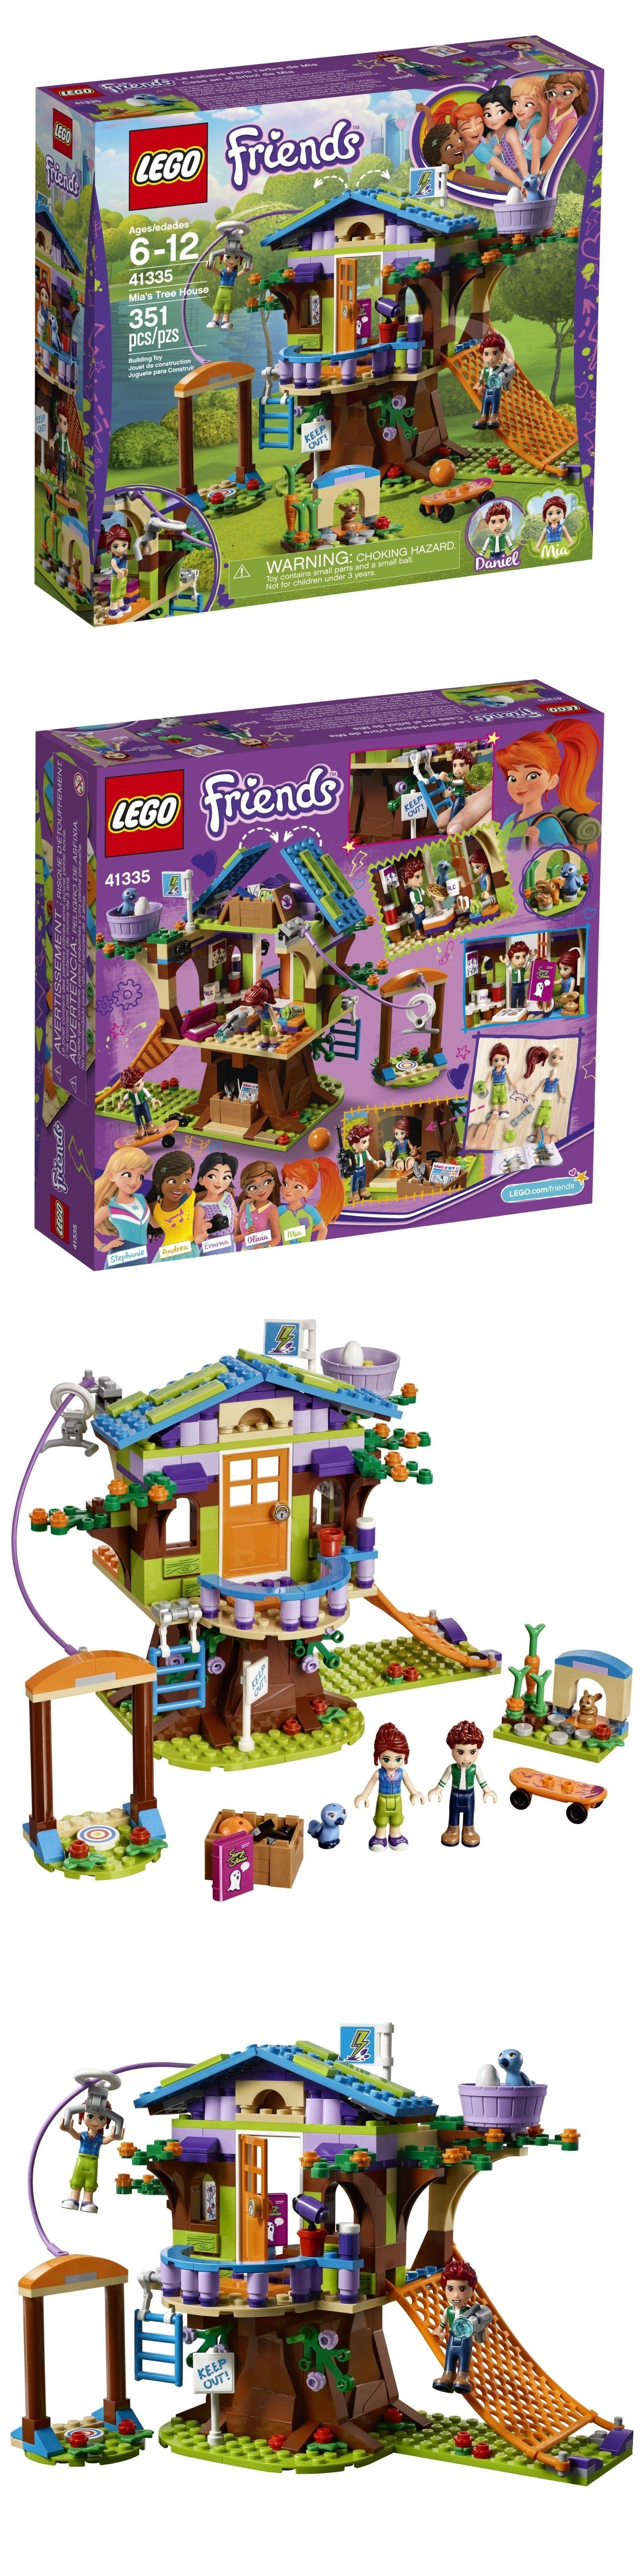 Lego Complete Sets And Packs 19006 Educational Toys Lego Friends